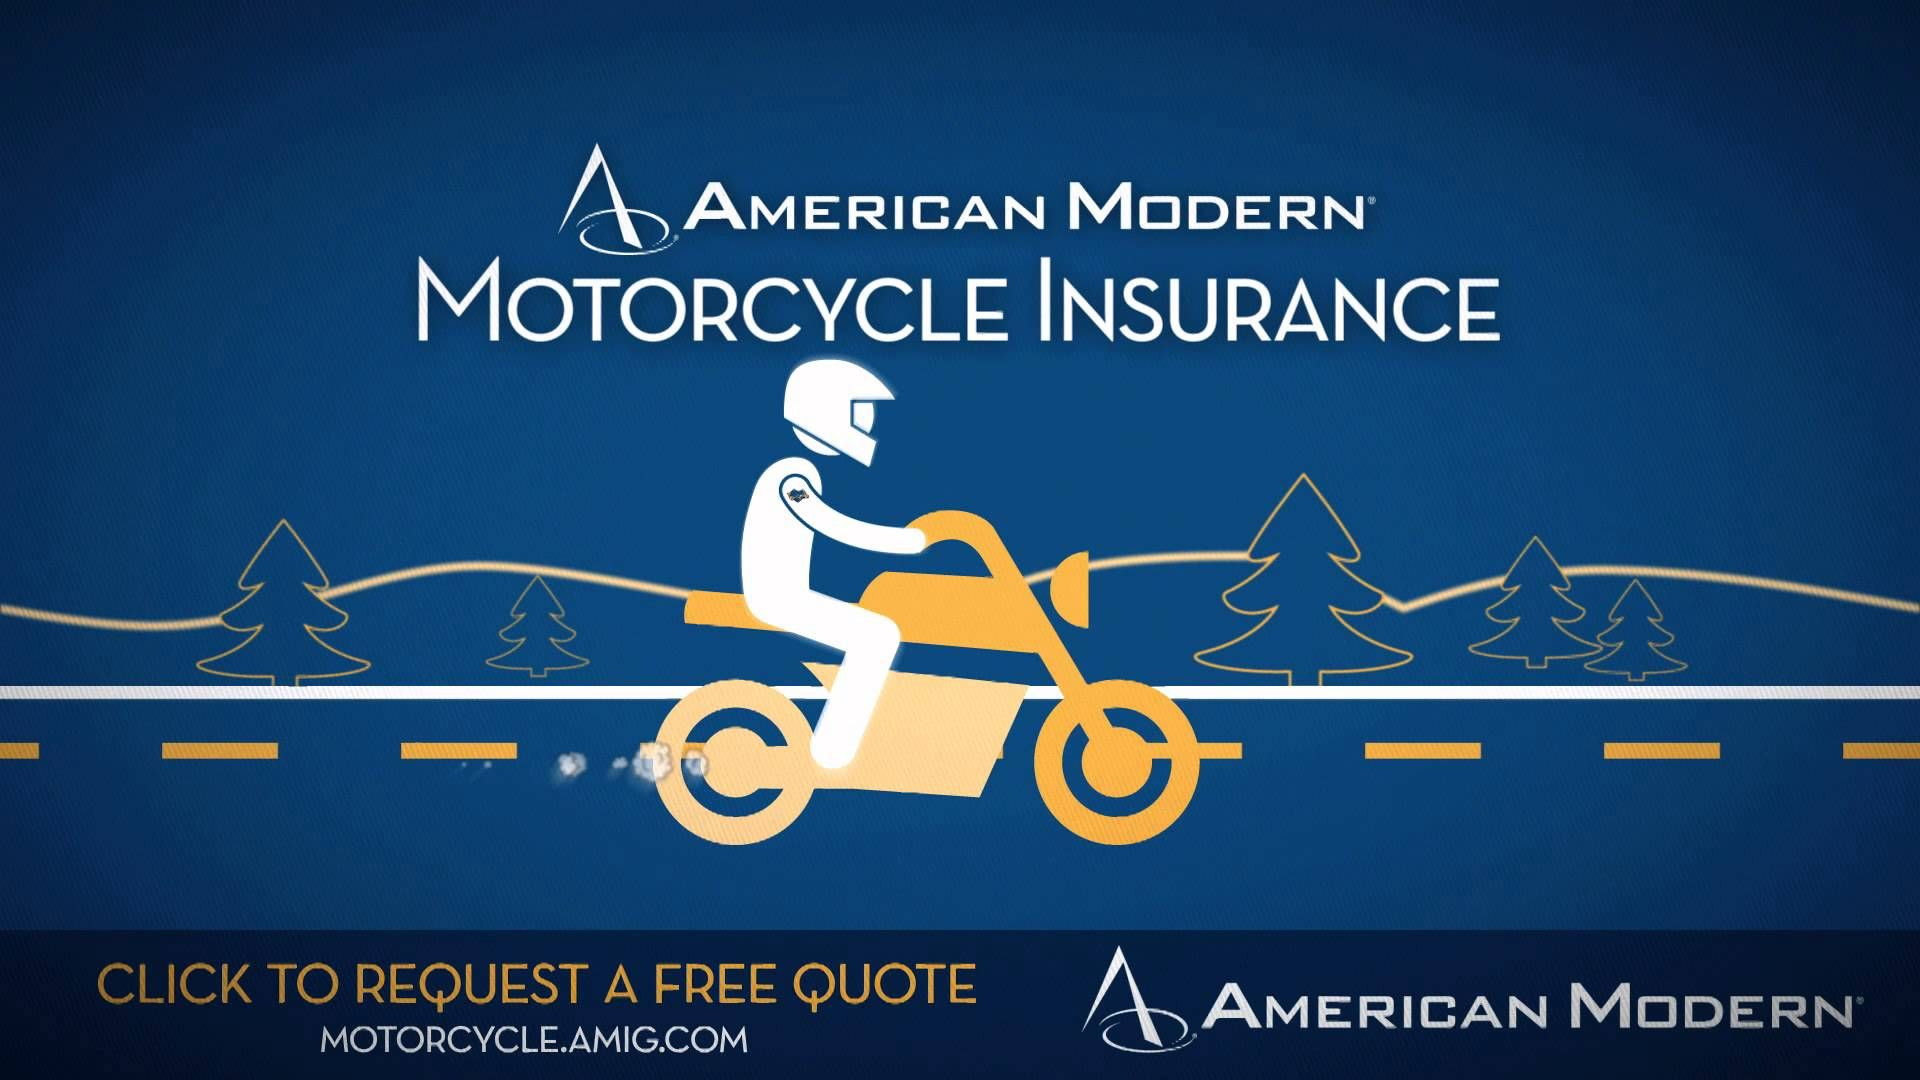 Can You Imagine Life Without A Motorcycle Well You Don T Need To Insure Your Motorcycle For What It Costs To Replace It Get A Free Quotes Life Insurance